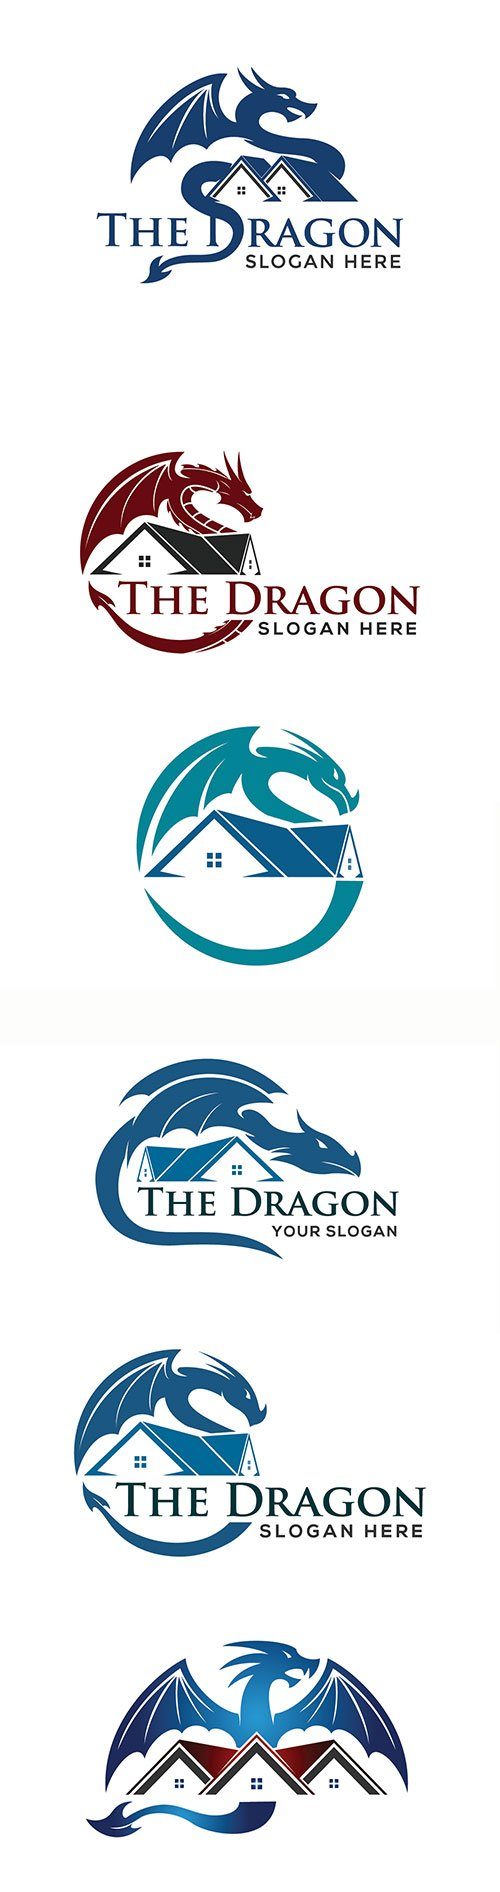 Dragon and roof concept for real estate or home logo icon template